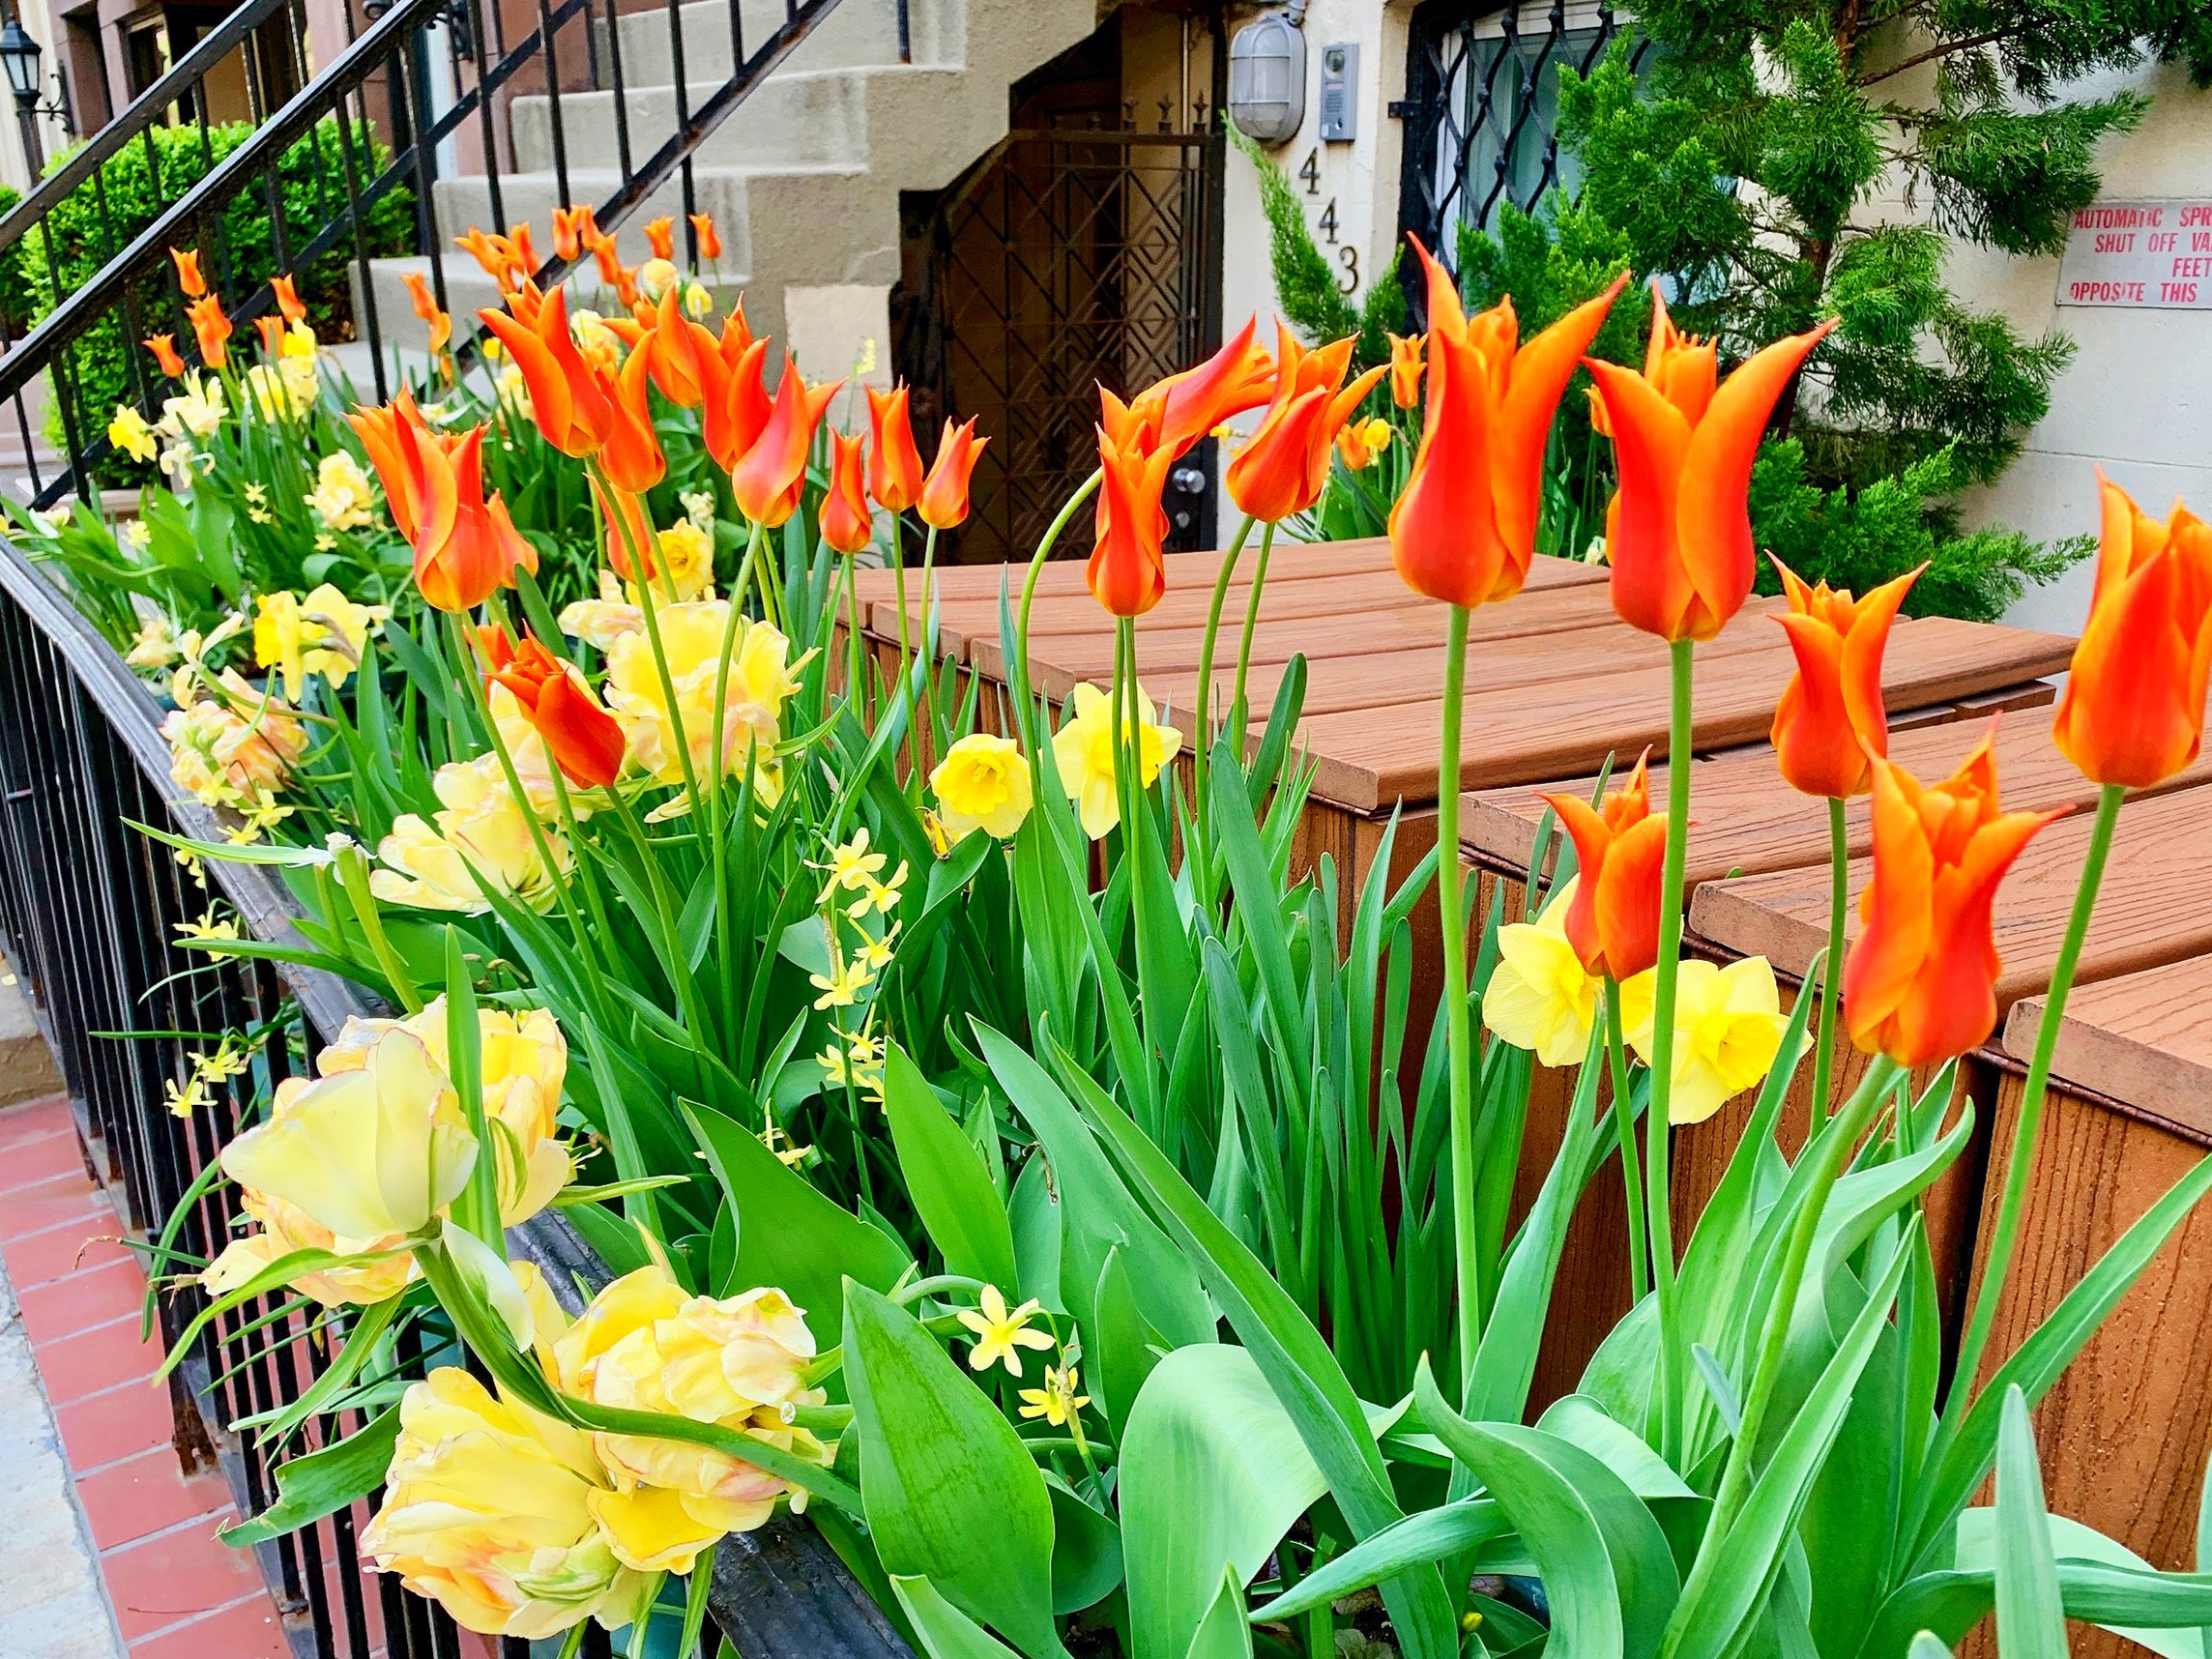 Tulips blooming on West 43rd St. -- a sure sign that spring is here!